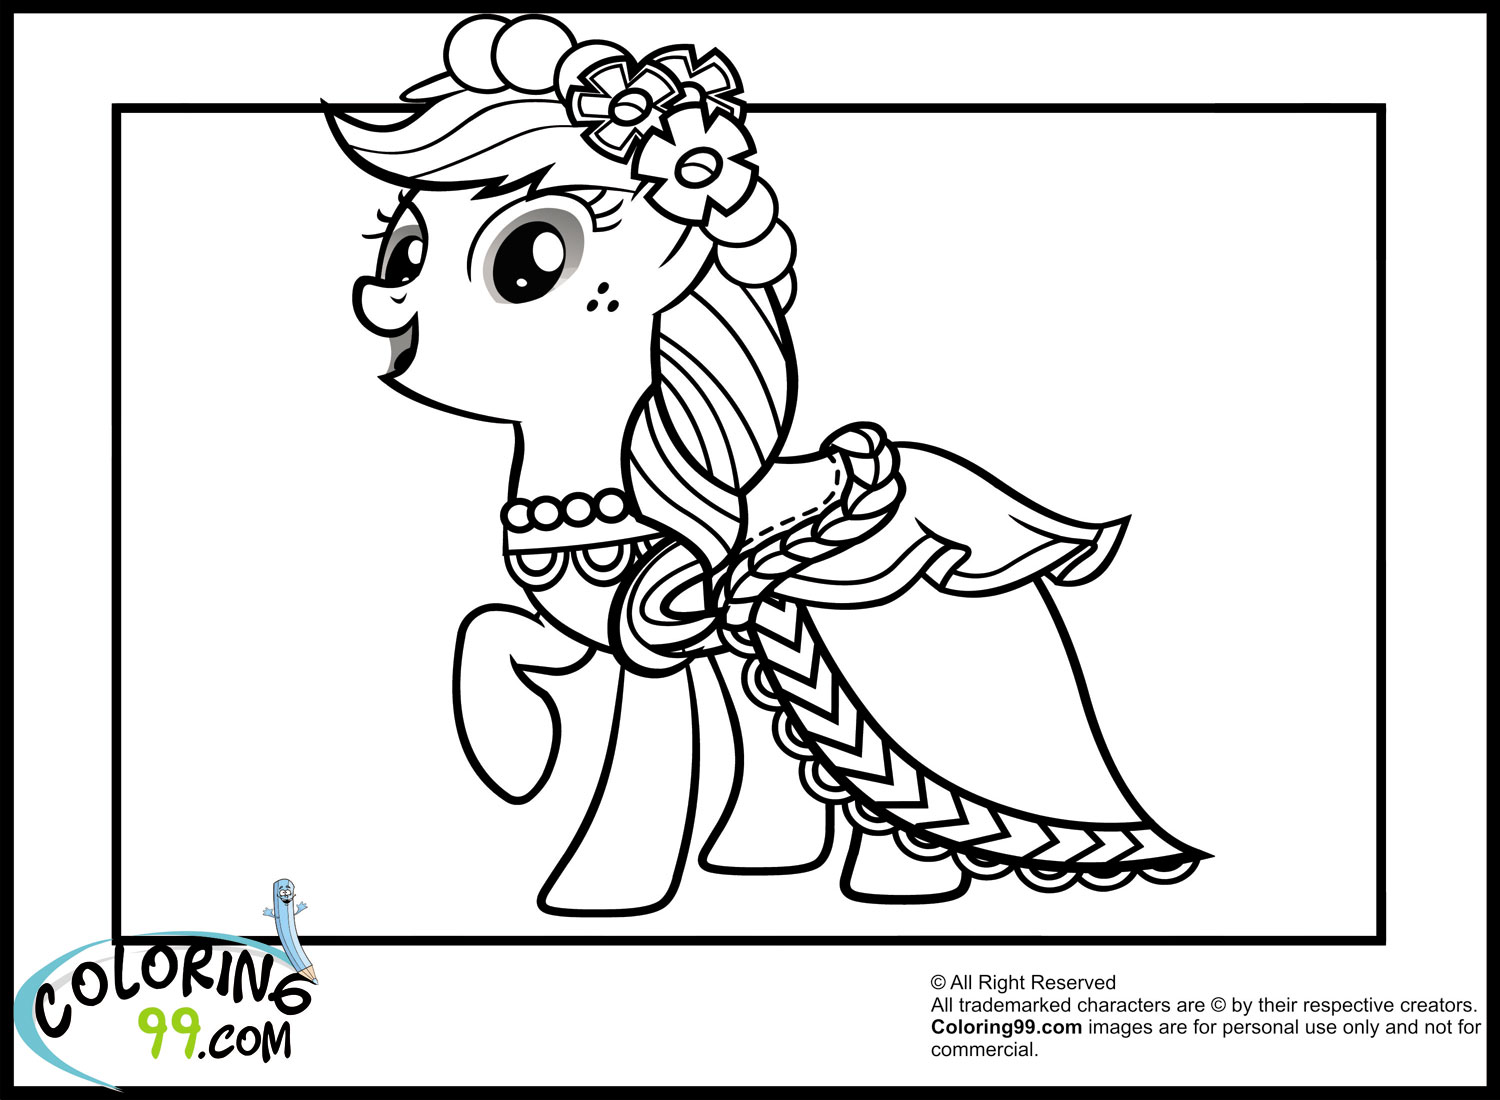 printable coloring pages of my little pony - My Little Pony Fluttershy coloring pages for kids printable free